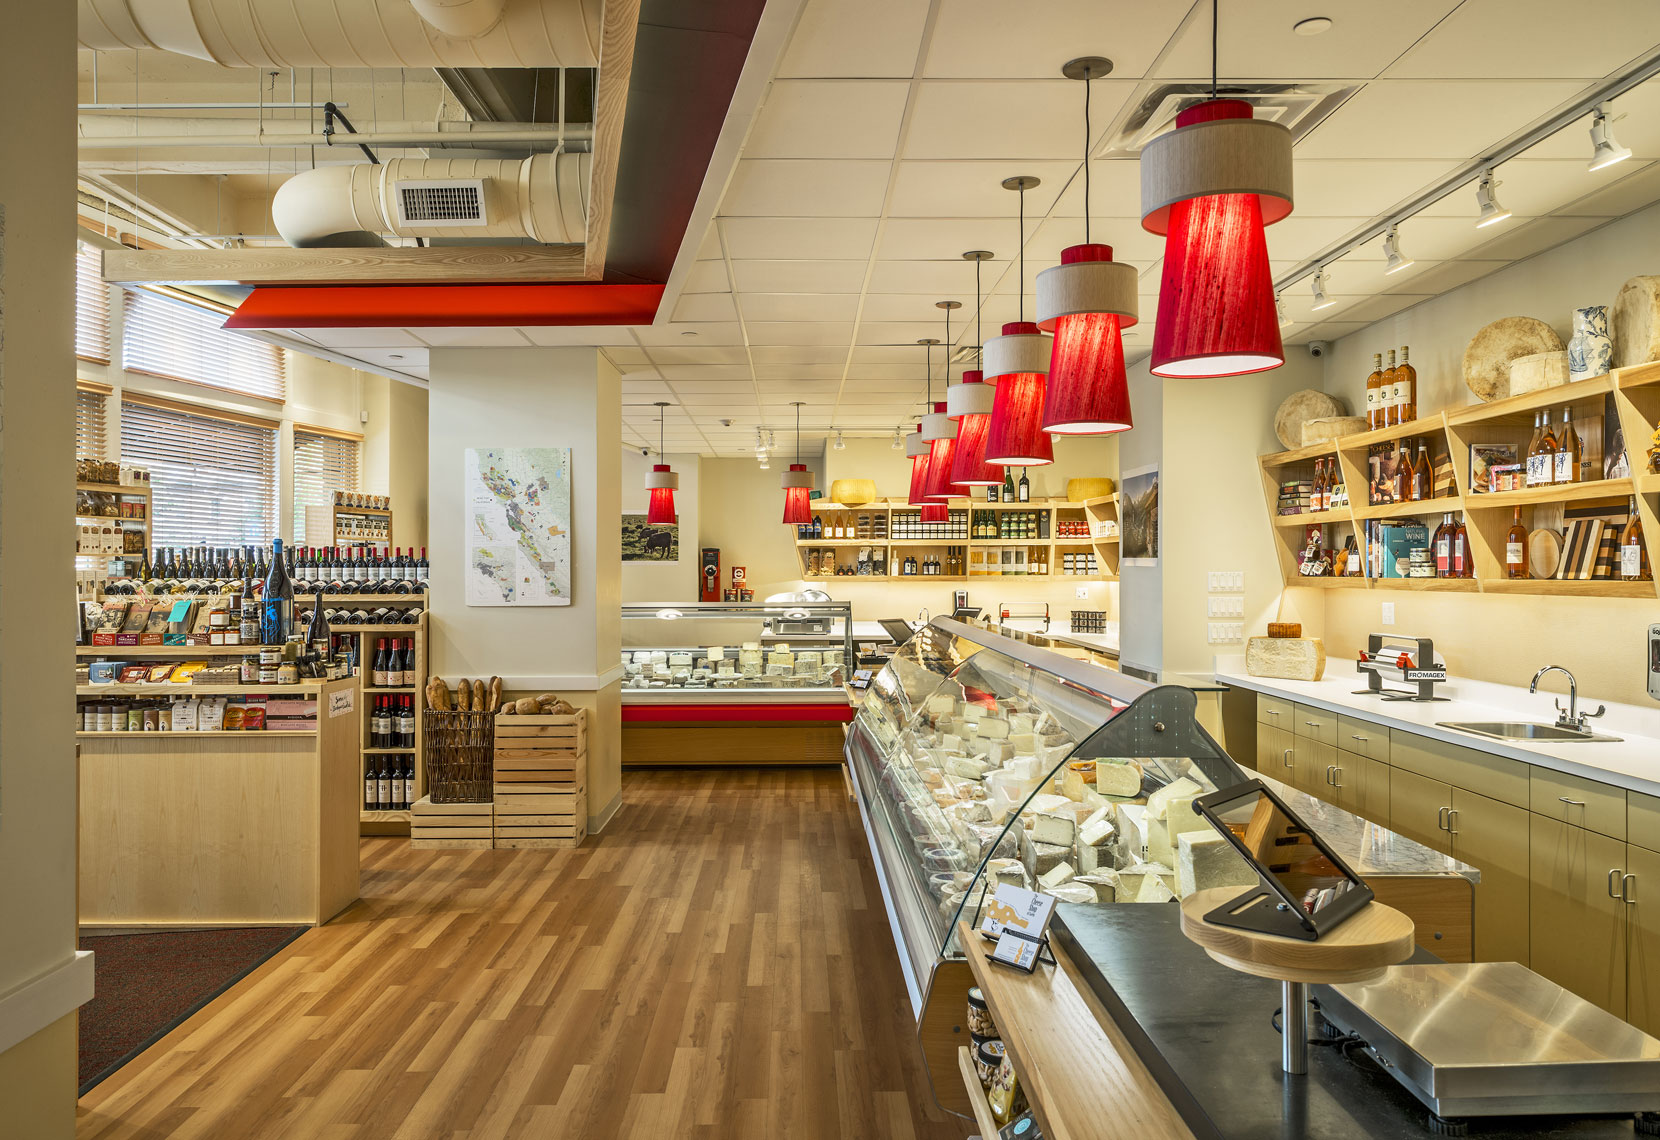 The Cheese Shop of Salem, Interior Design by Kenneth E. Hurd & Associates